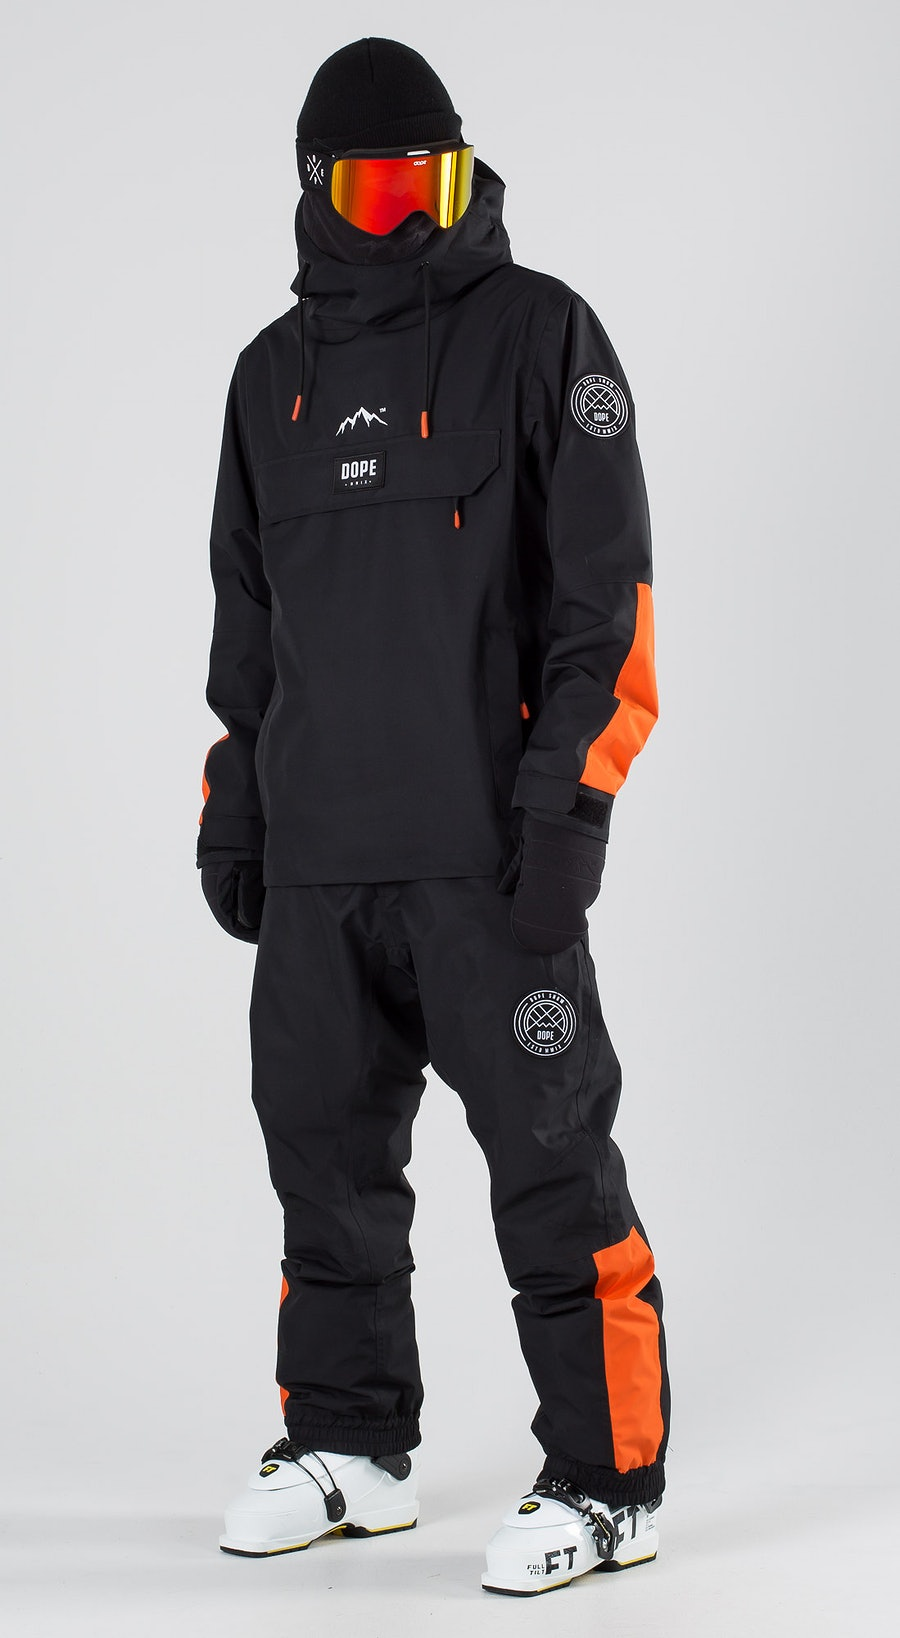 Dope Blizzard LE Black Orange Skibekleidung Multi